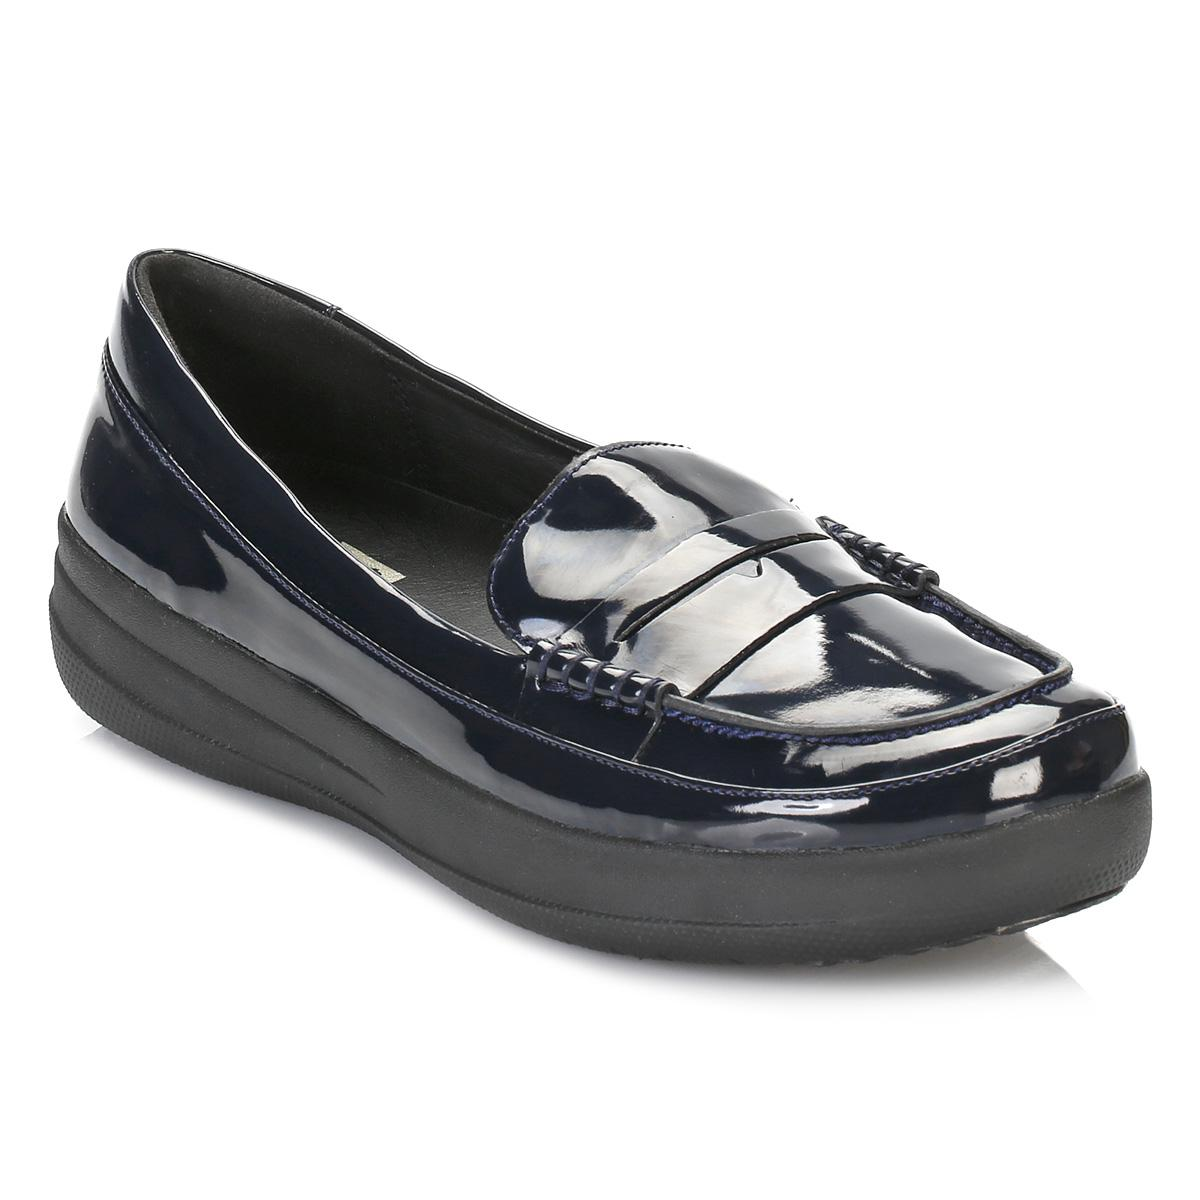 183e4ca90 Lyst - Fitflop Womens Supernavy Patent F-sporty Penny Loafers